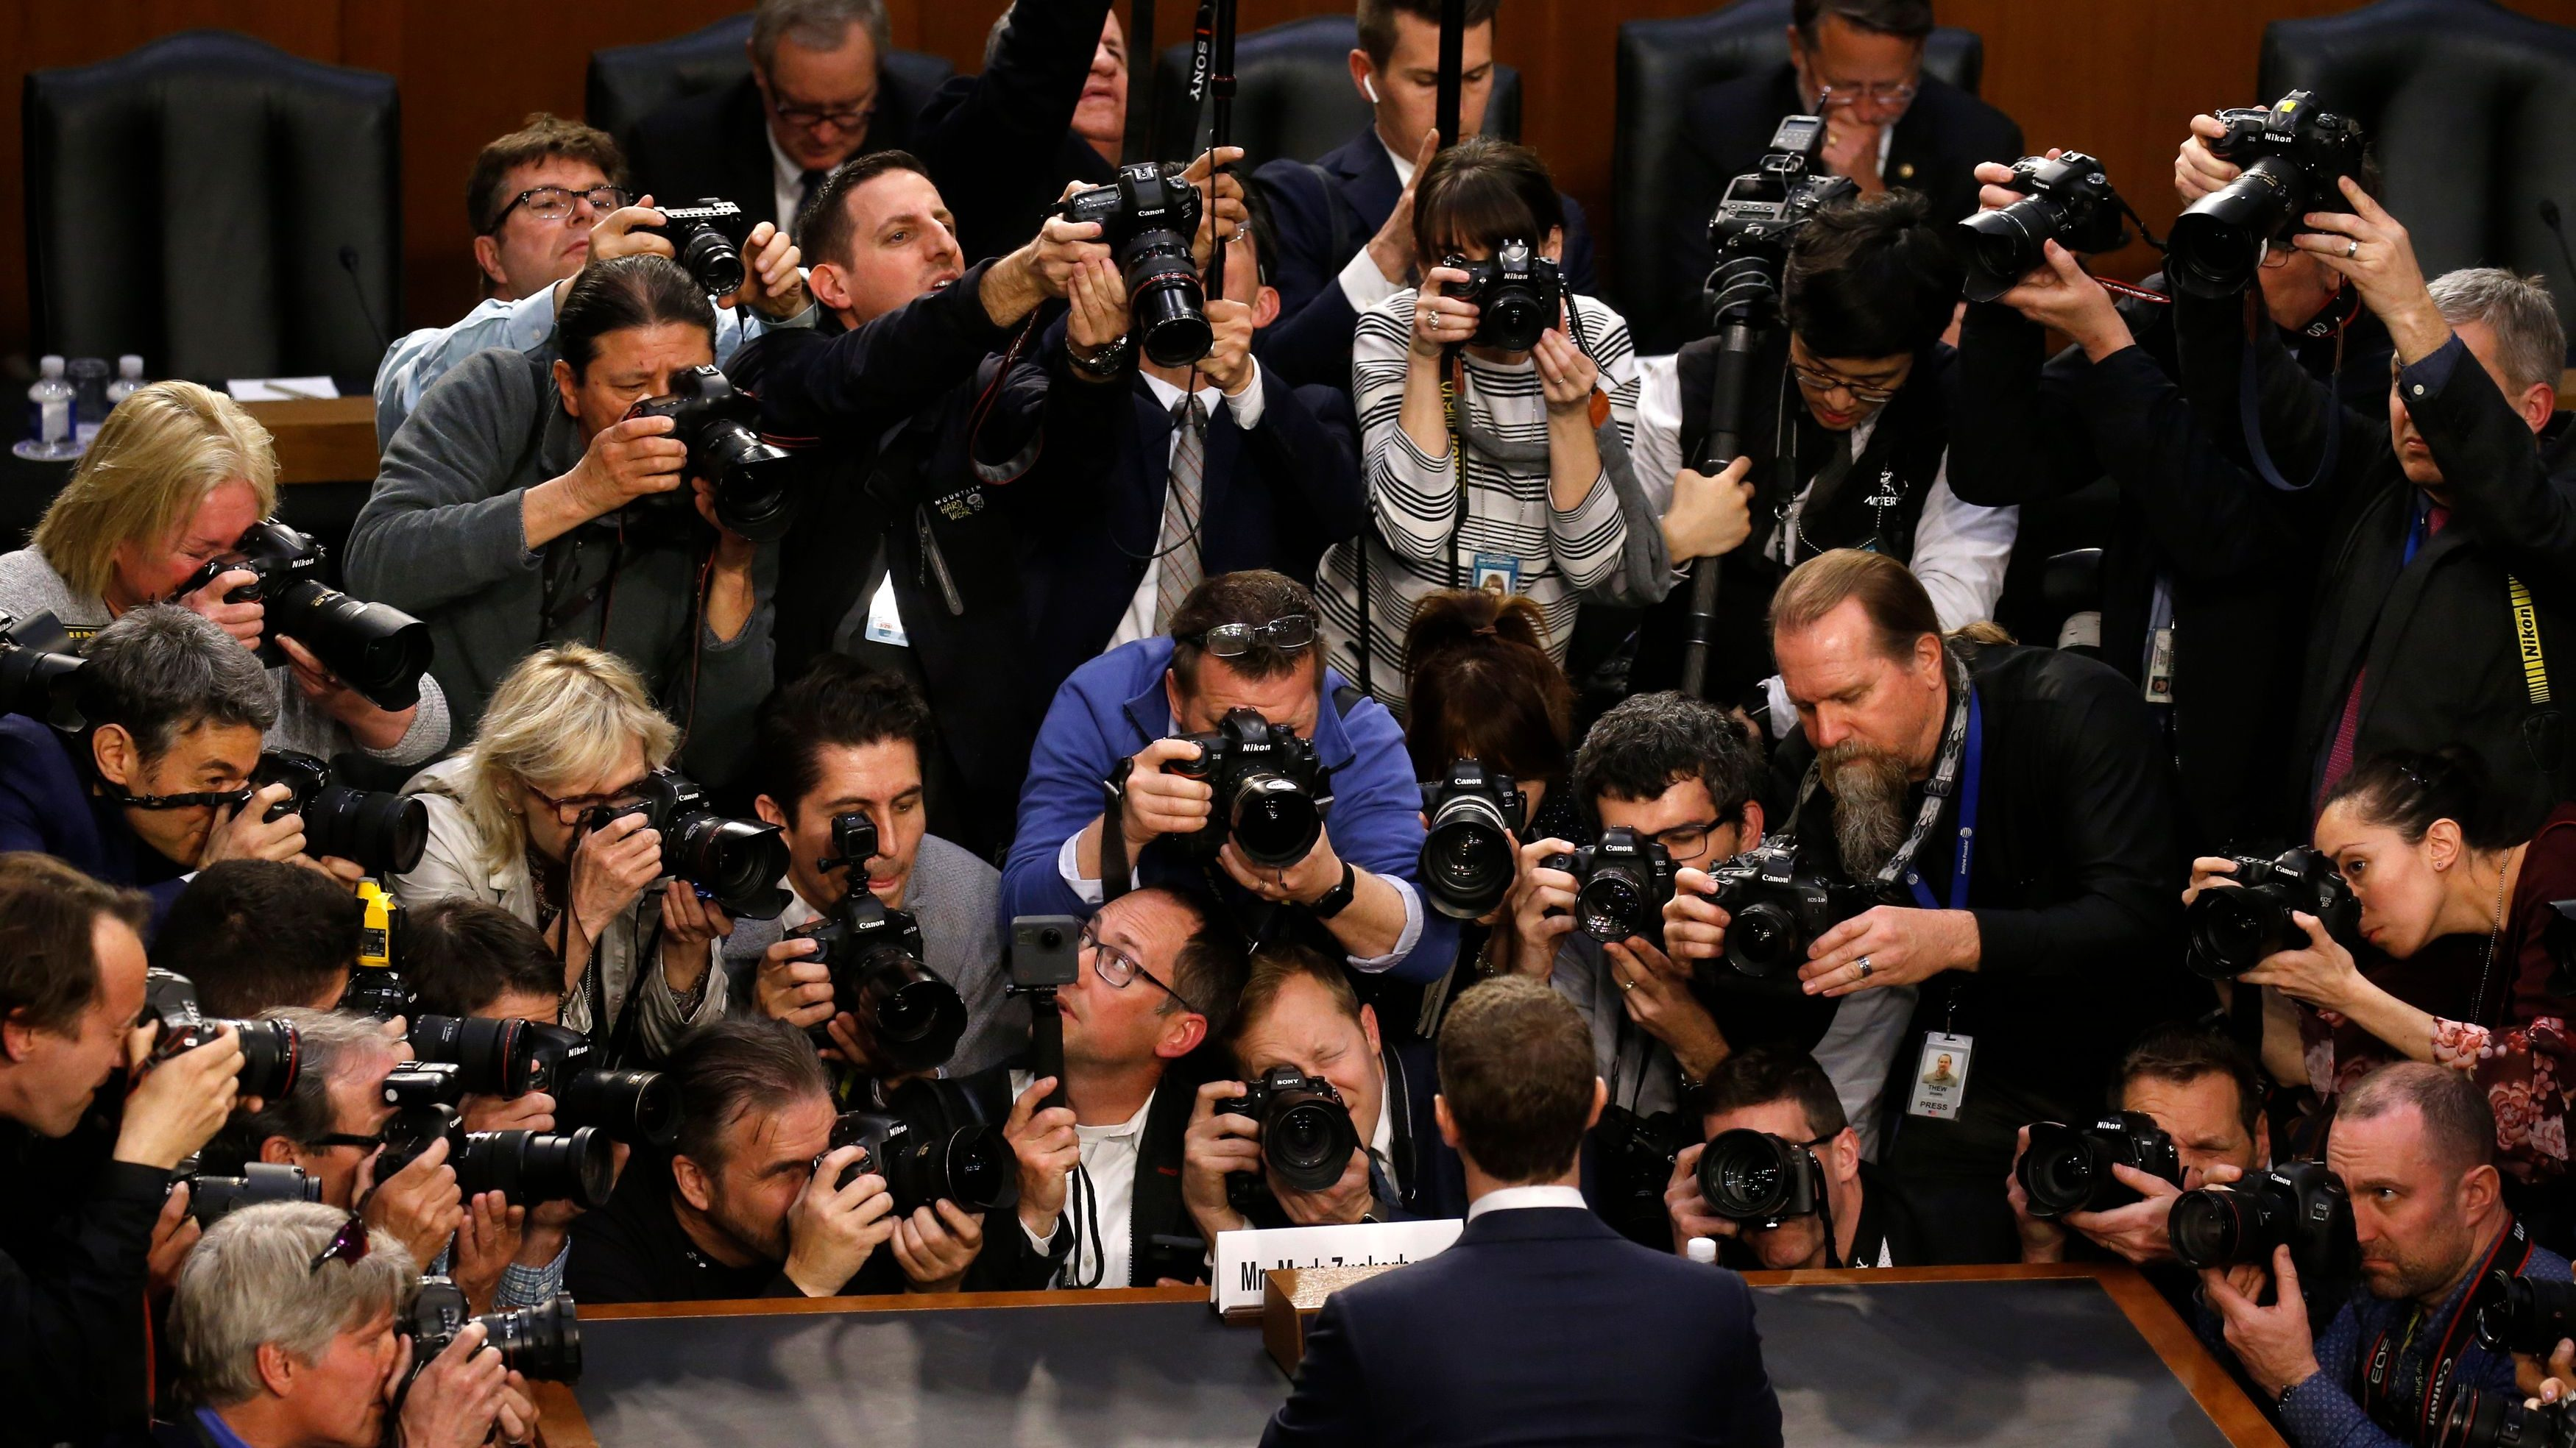 Facebook CEO Mark Zuckerberg is surrounded by members of the media as he arrives to testify before a Senate Judiciary and Commerce Committees joint hearing regarding the company's use and protection of user data, on Capitol Hill in Washington, U.S., April 10, 2018.